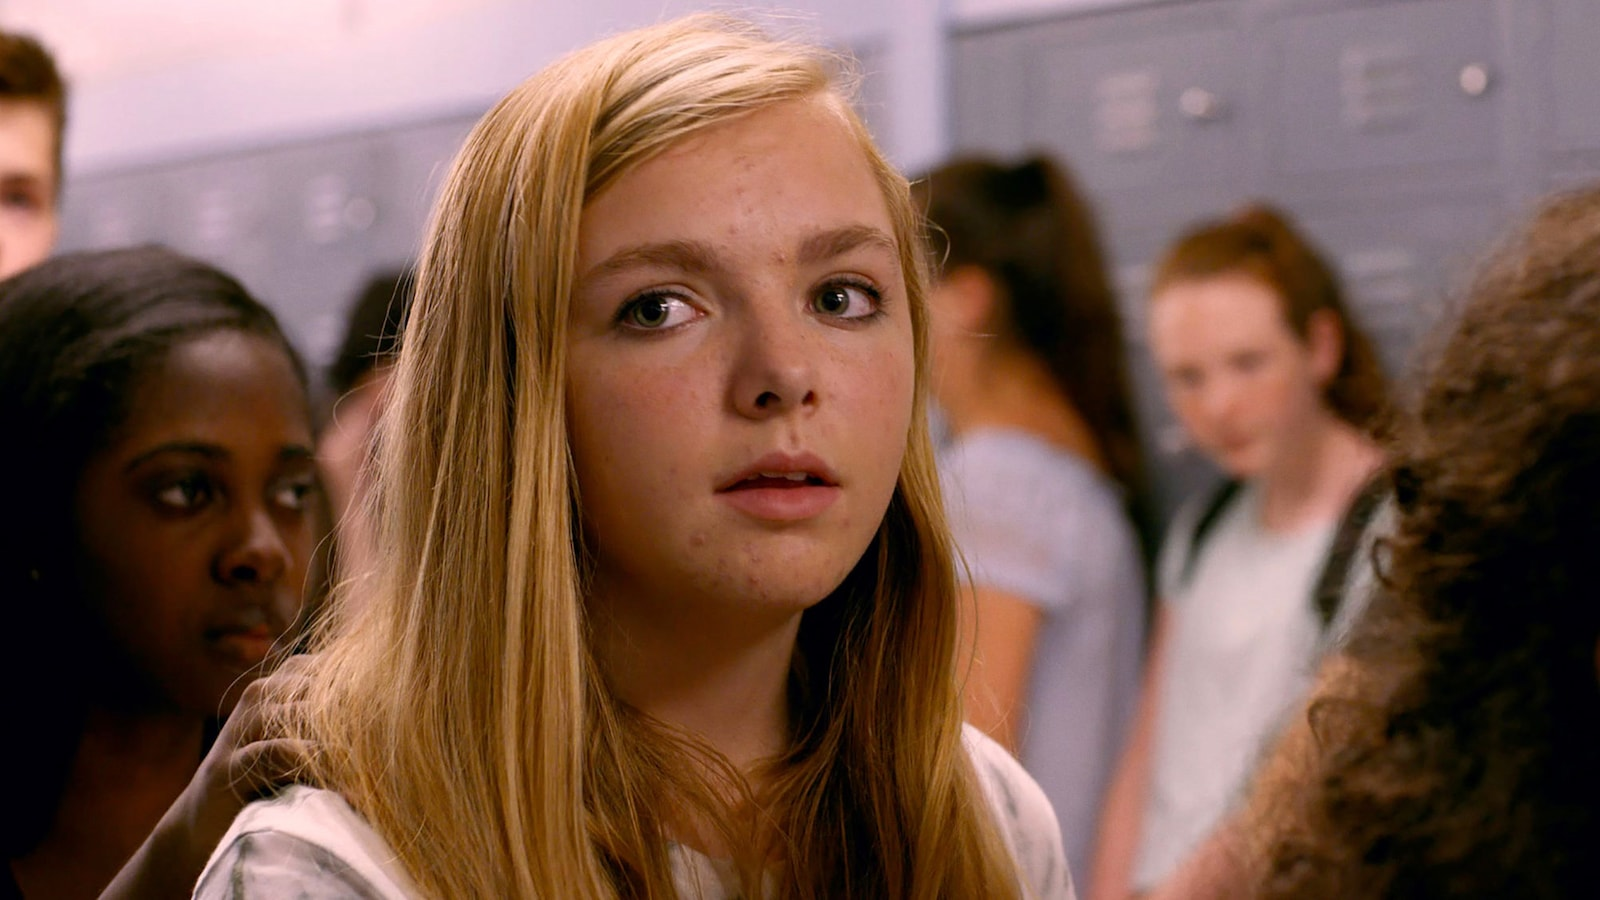 Close-up of young blonde actress Elsie Fisher in the high school hallway.